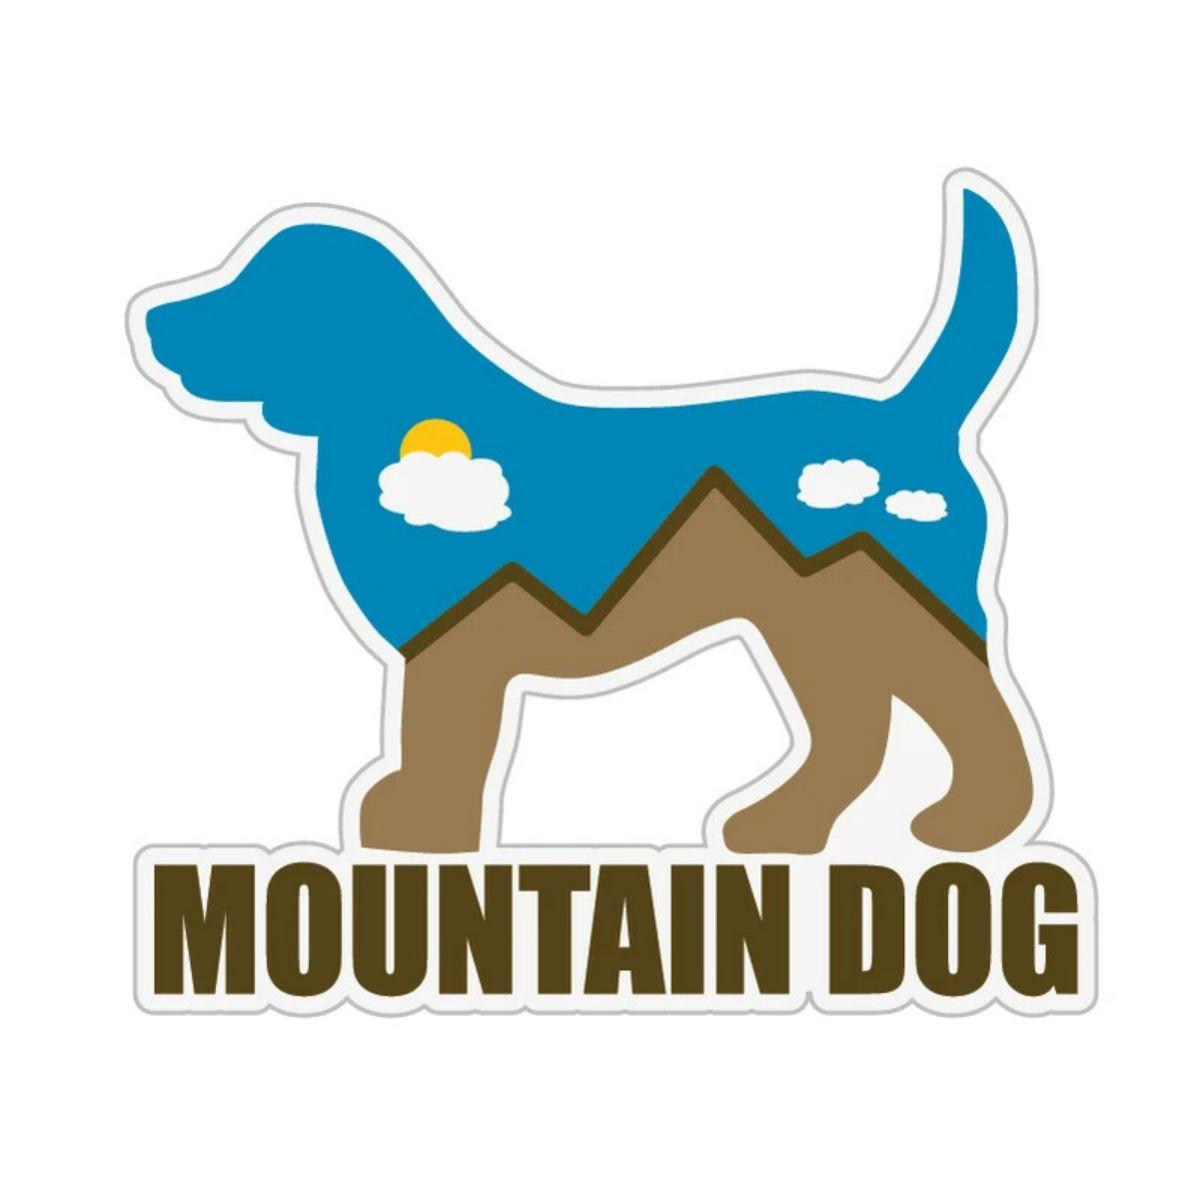 Mountain Dog Sticker by Dog Speak